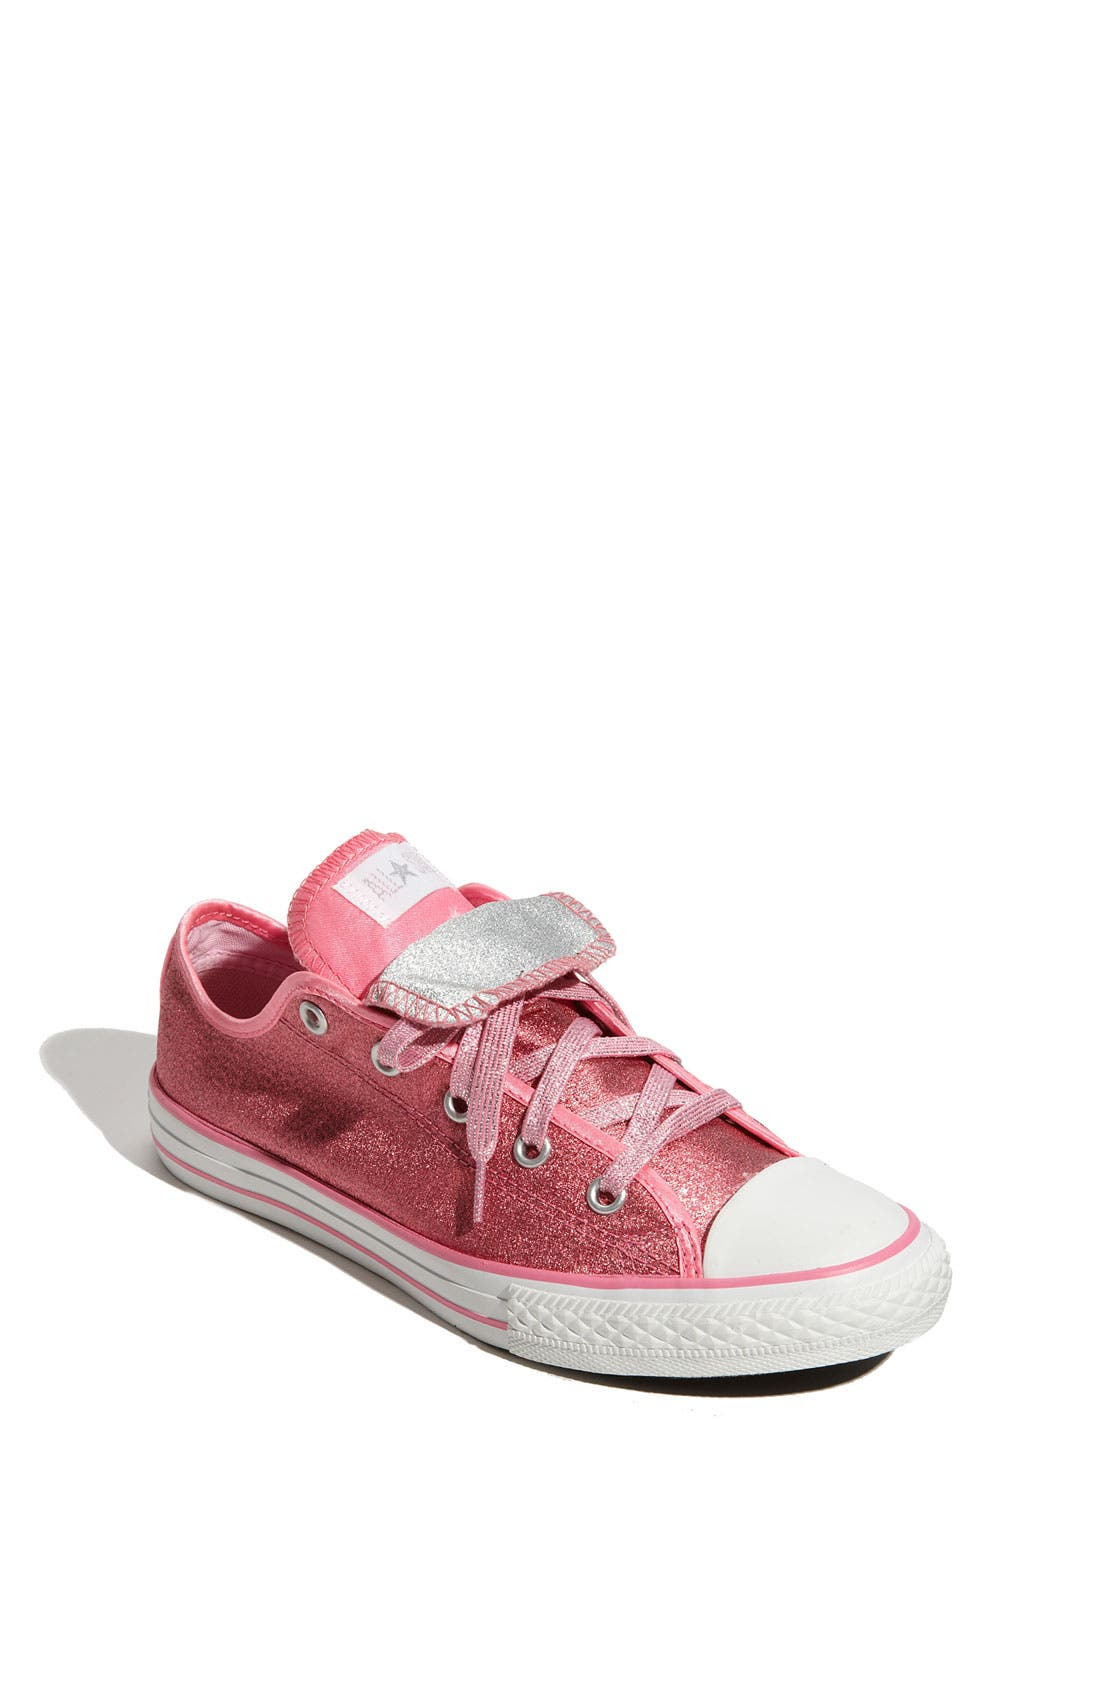 Alternate Image 1 Selected - Converse Double Tongue Sneaker (Toddler, Little Kid & Big Kid)